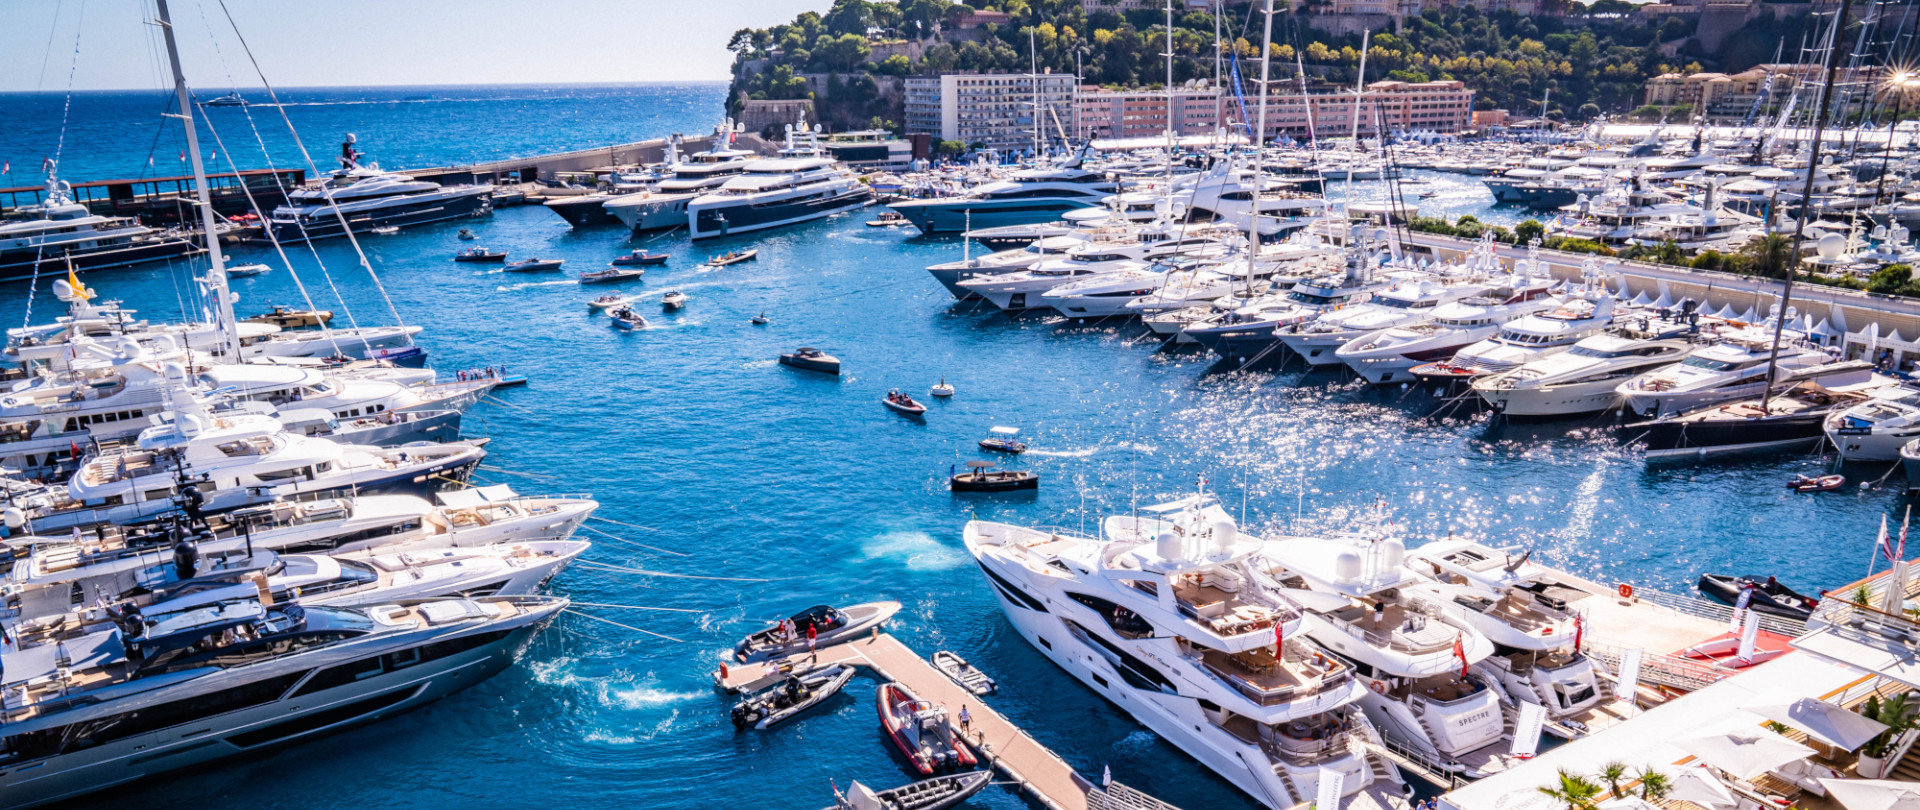 Luxury yachts at the Monaco Yacht Show